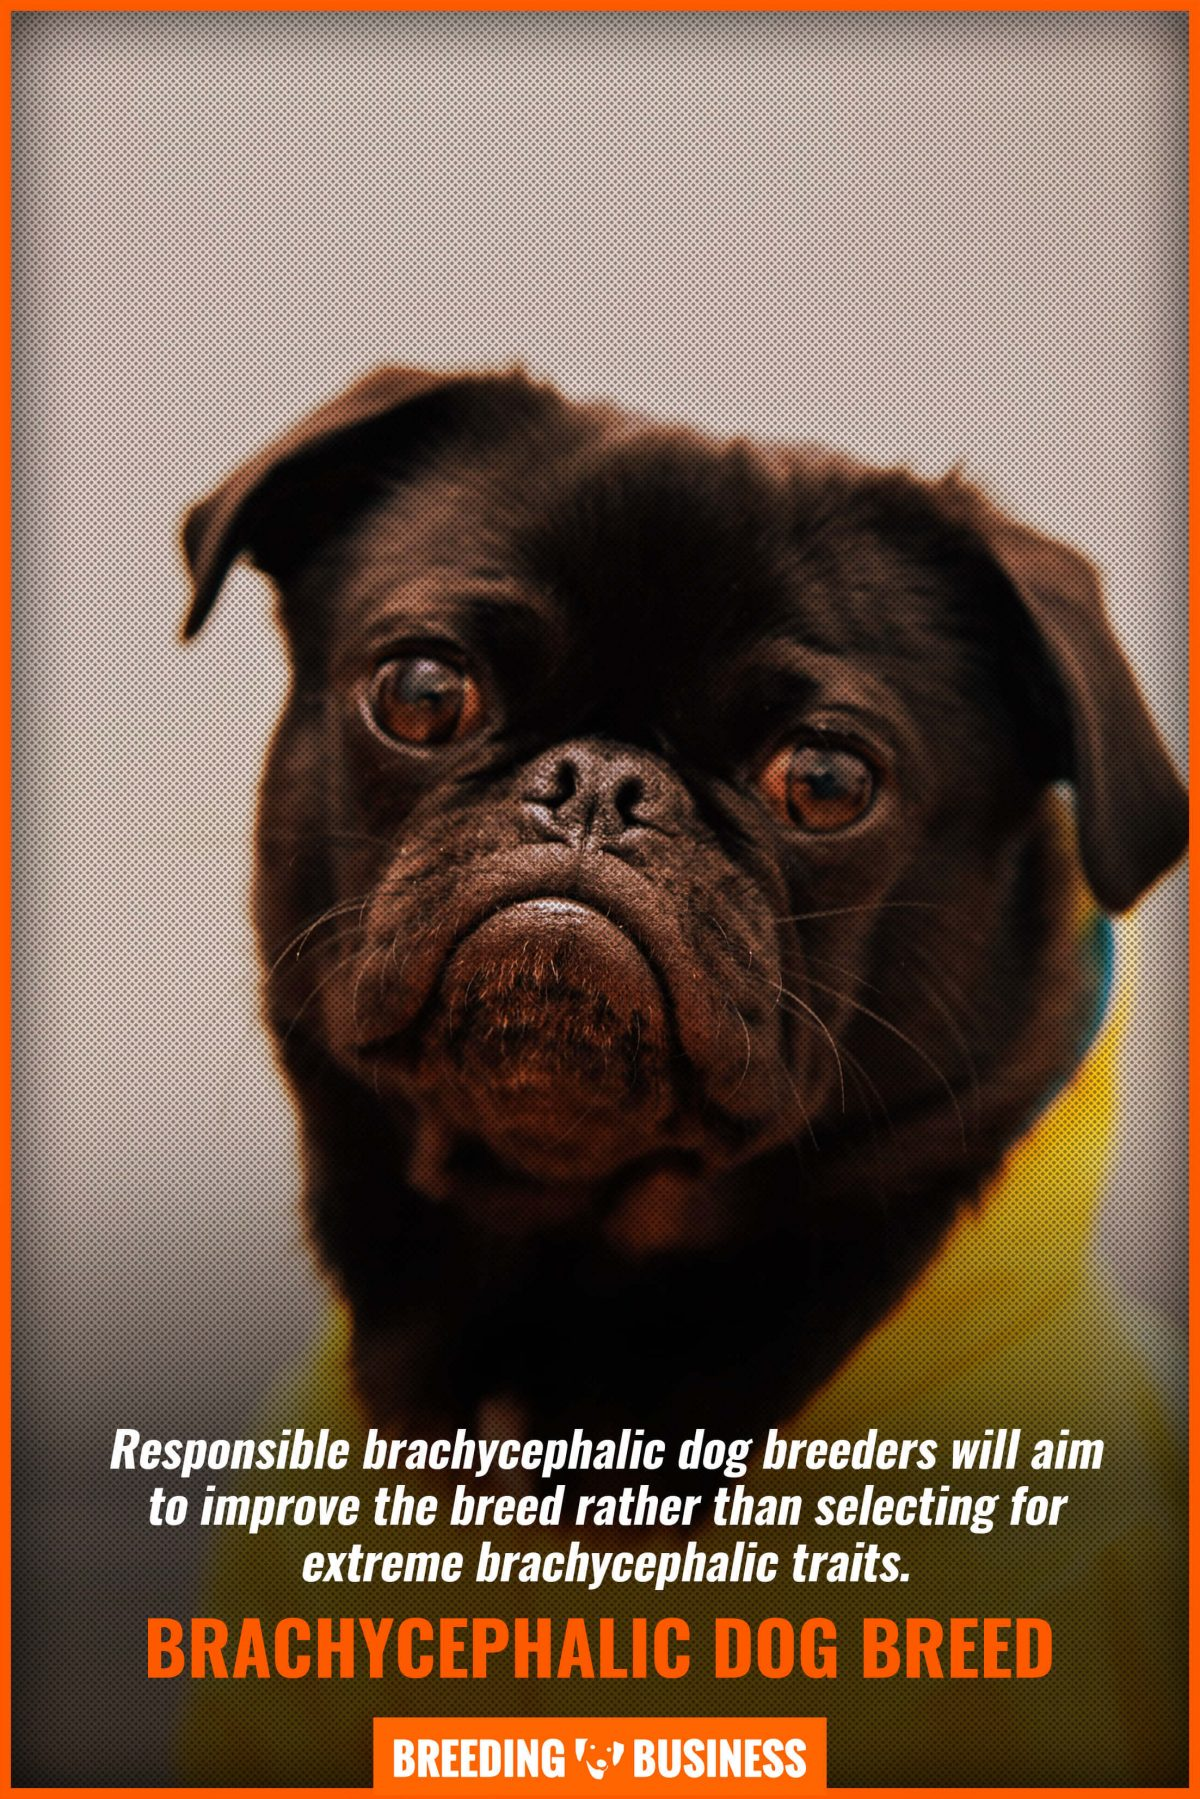 brachycephalic dog breed